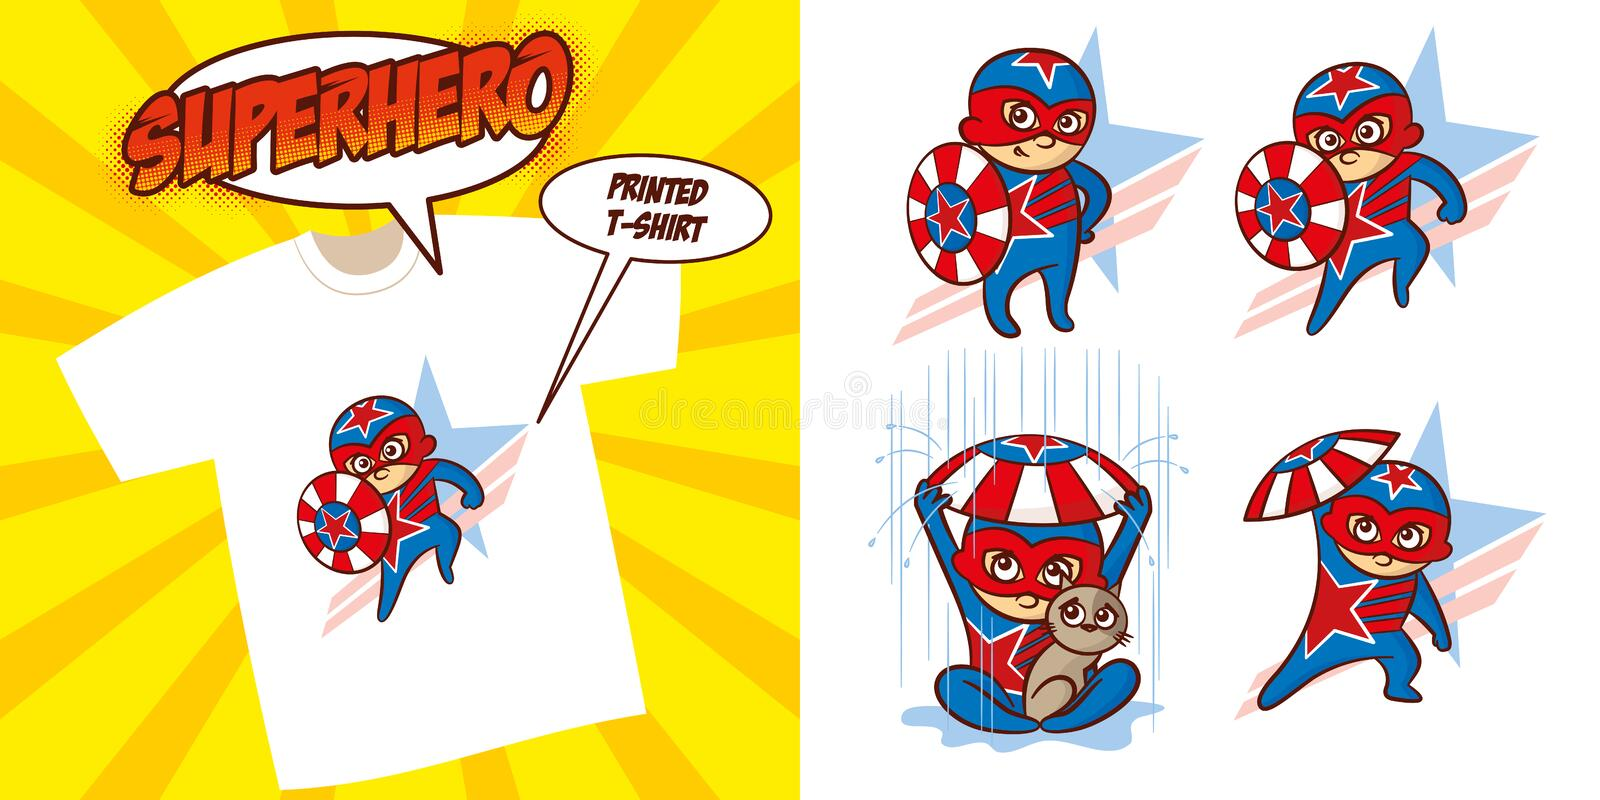 Superhero character Superheroes Set Vector illustration design. Superheroes Set Superhero character Vector illustration design for printed t-shirt royalty free illustration